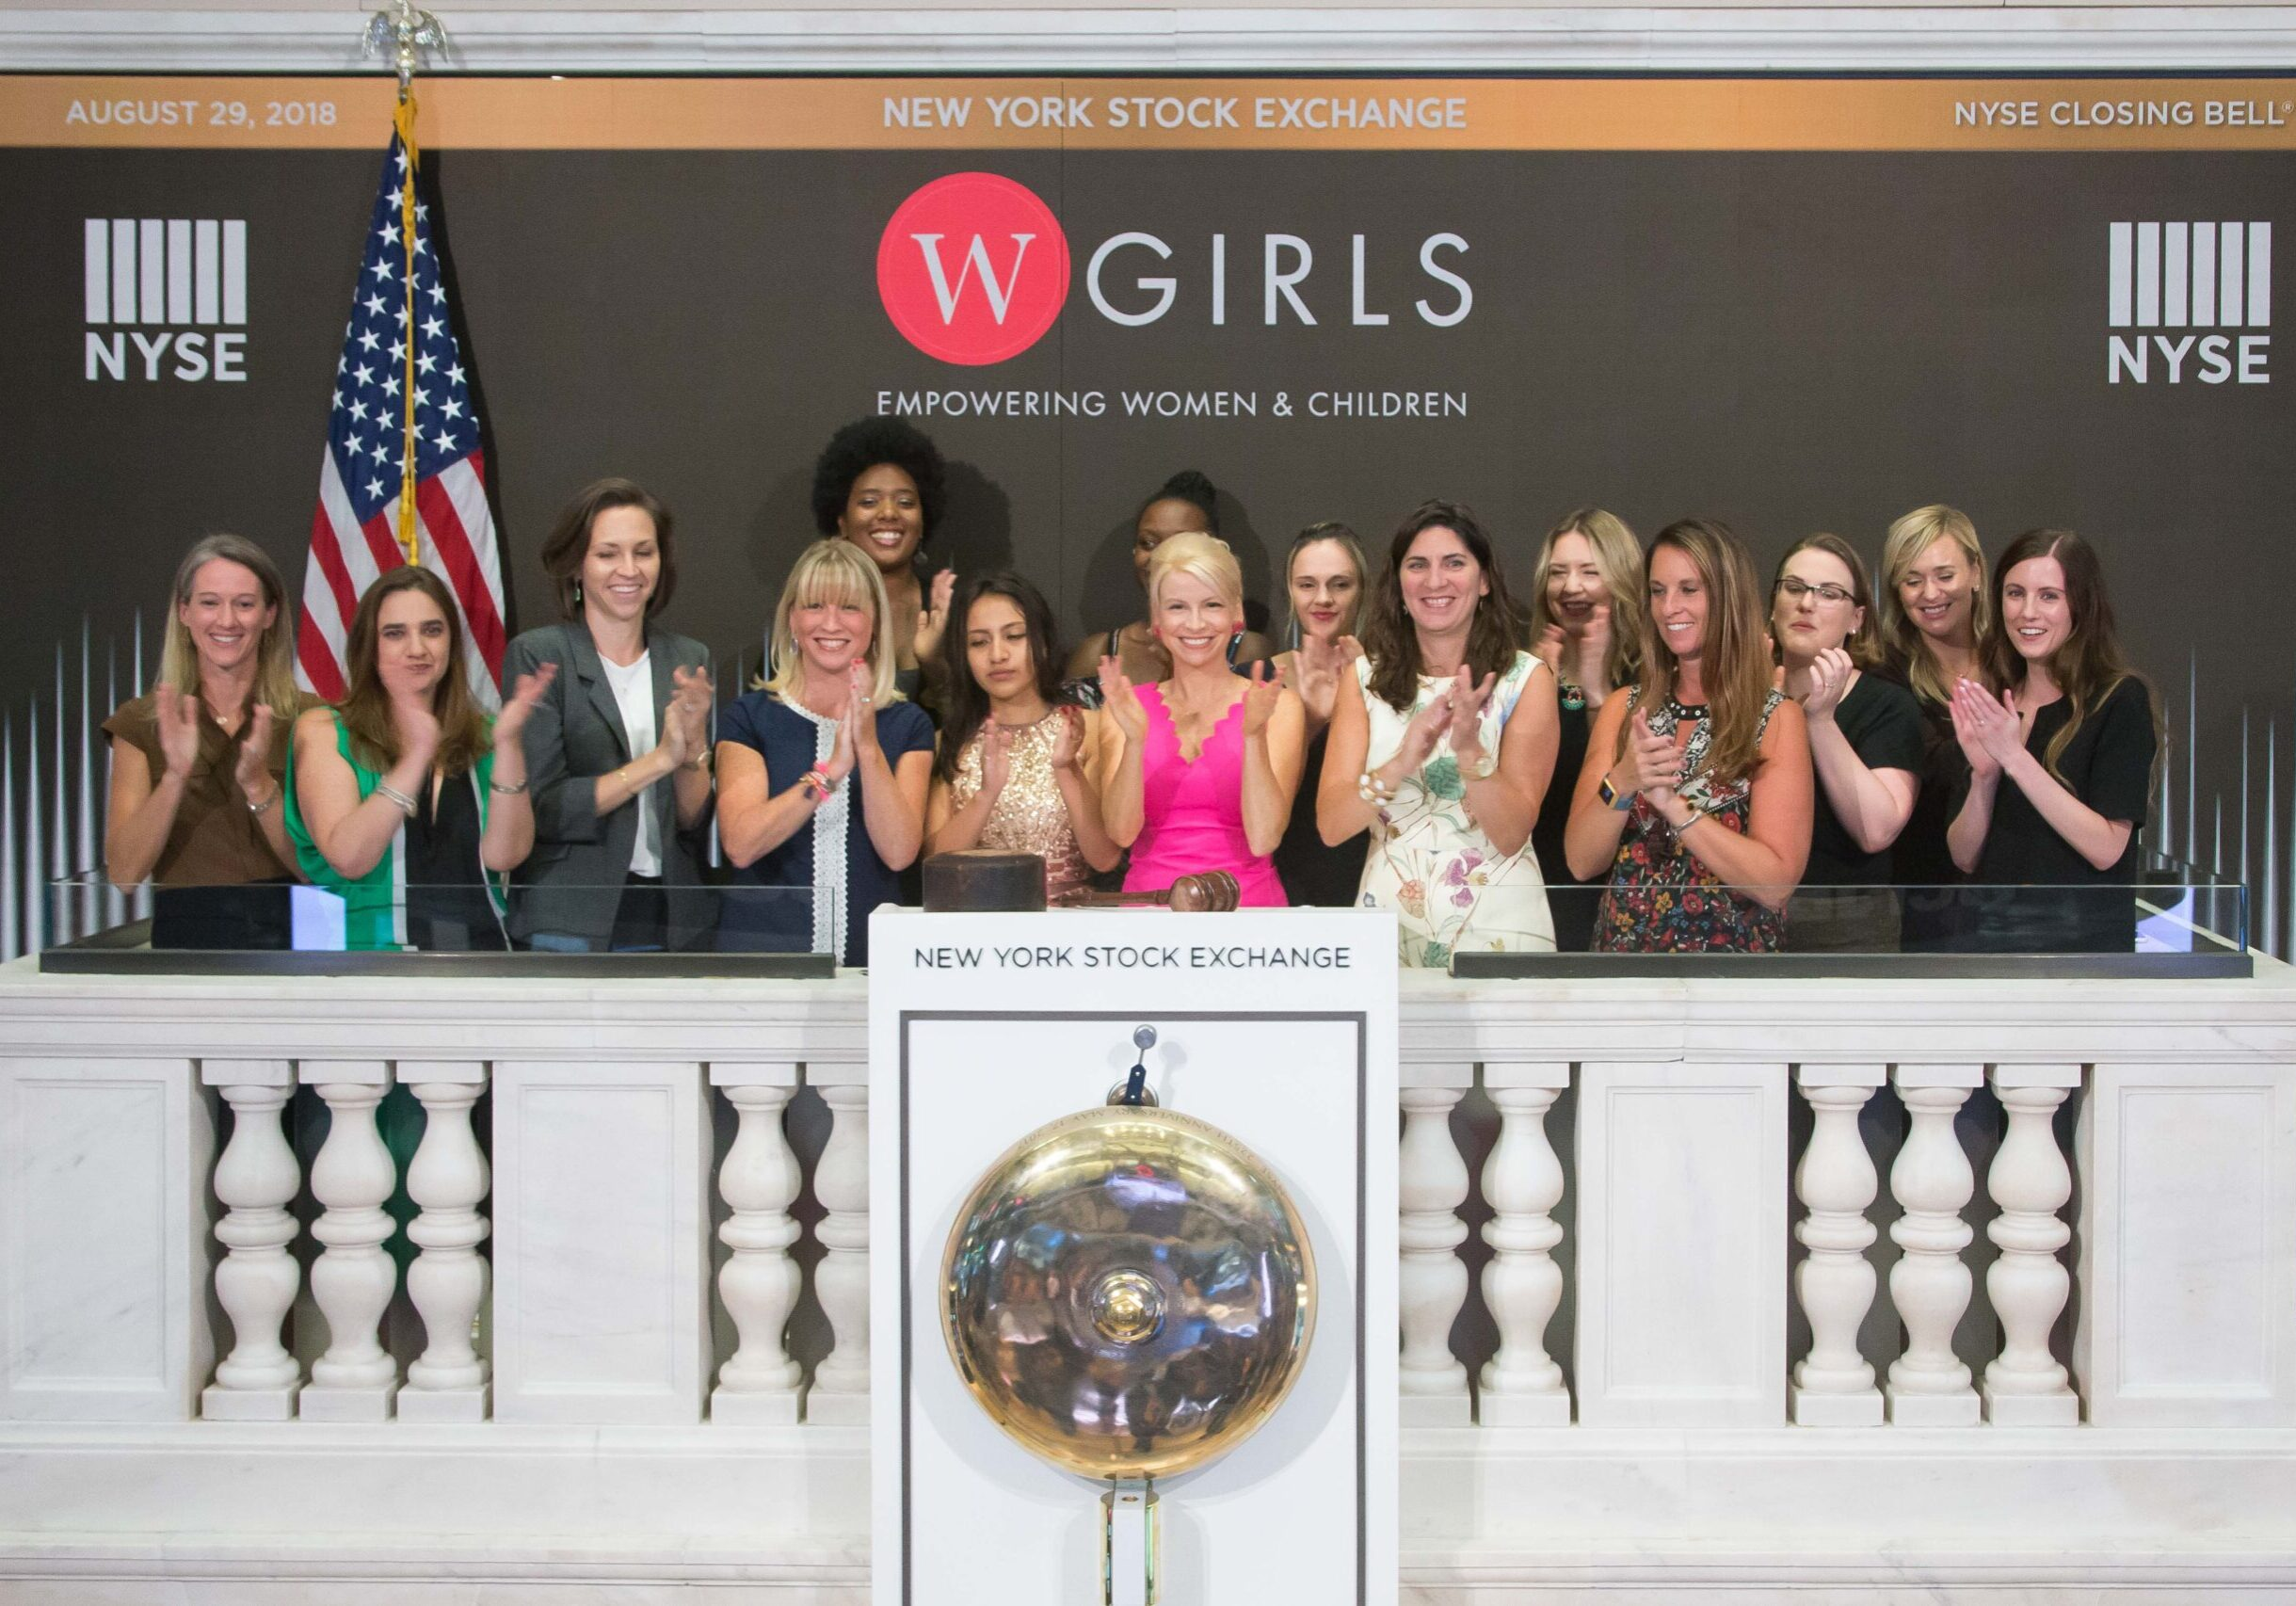 The New York Stock Exchange welcomes WGIRLS Inc. in celebration of their 10th anniversary. Founder Amy Heller, joined by NYSE President Stacey Cunningham, rings The Closing Bell®